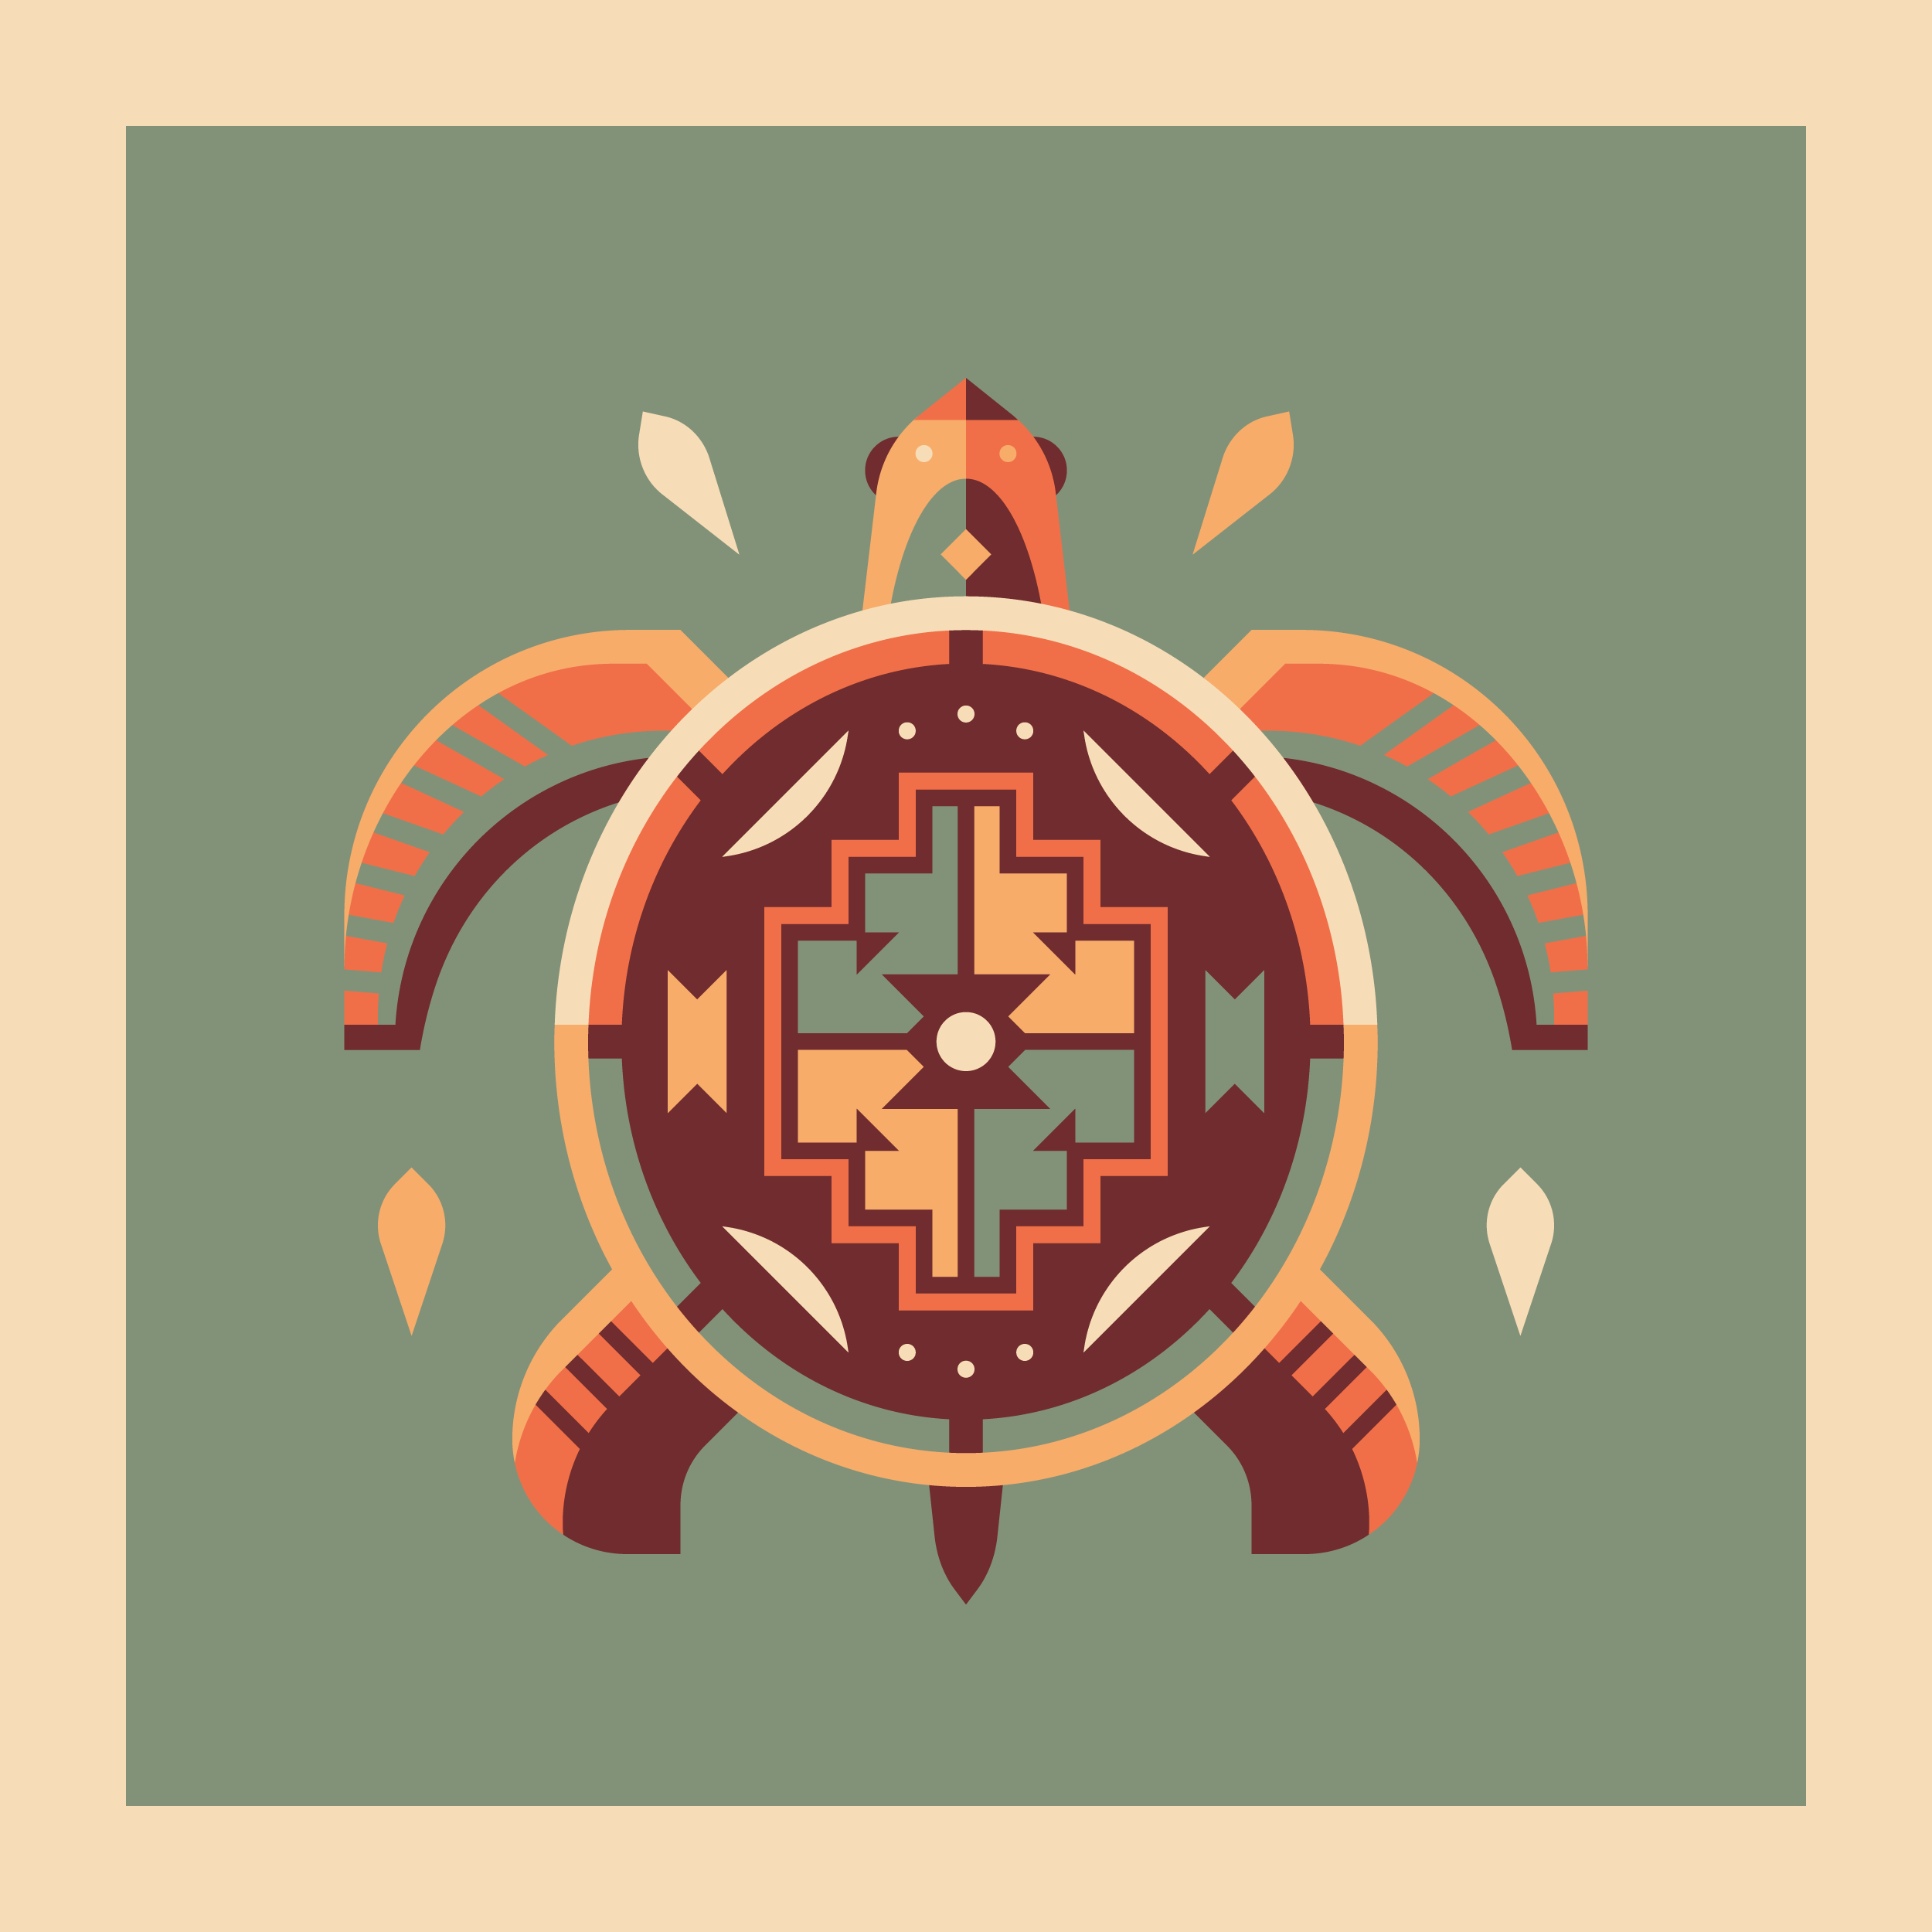 Turtle totem design by Matt Anderson and Canopy Design. Limited color, geometric pattern illustration with Navajo southwest art style.